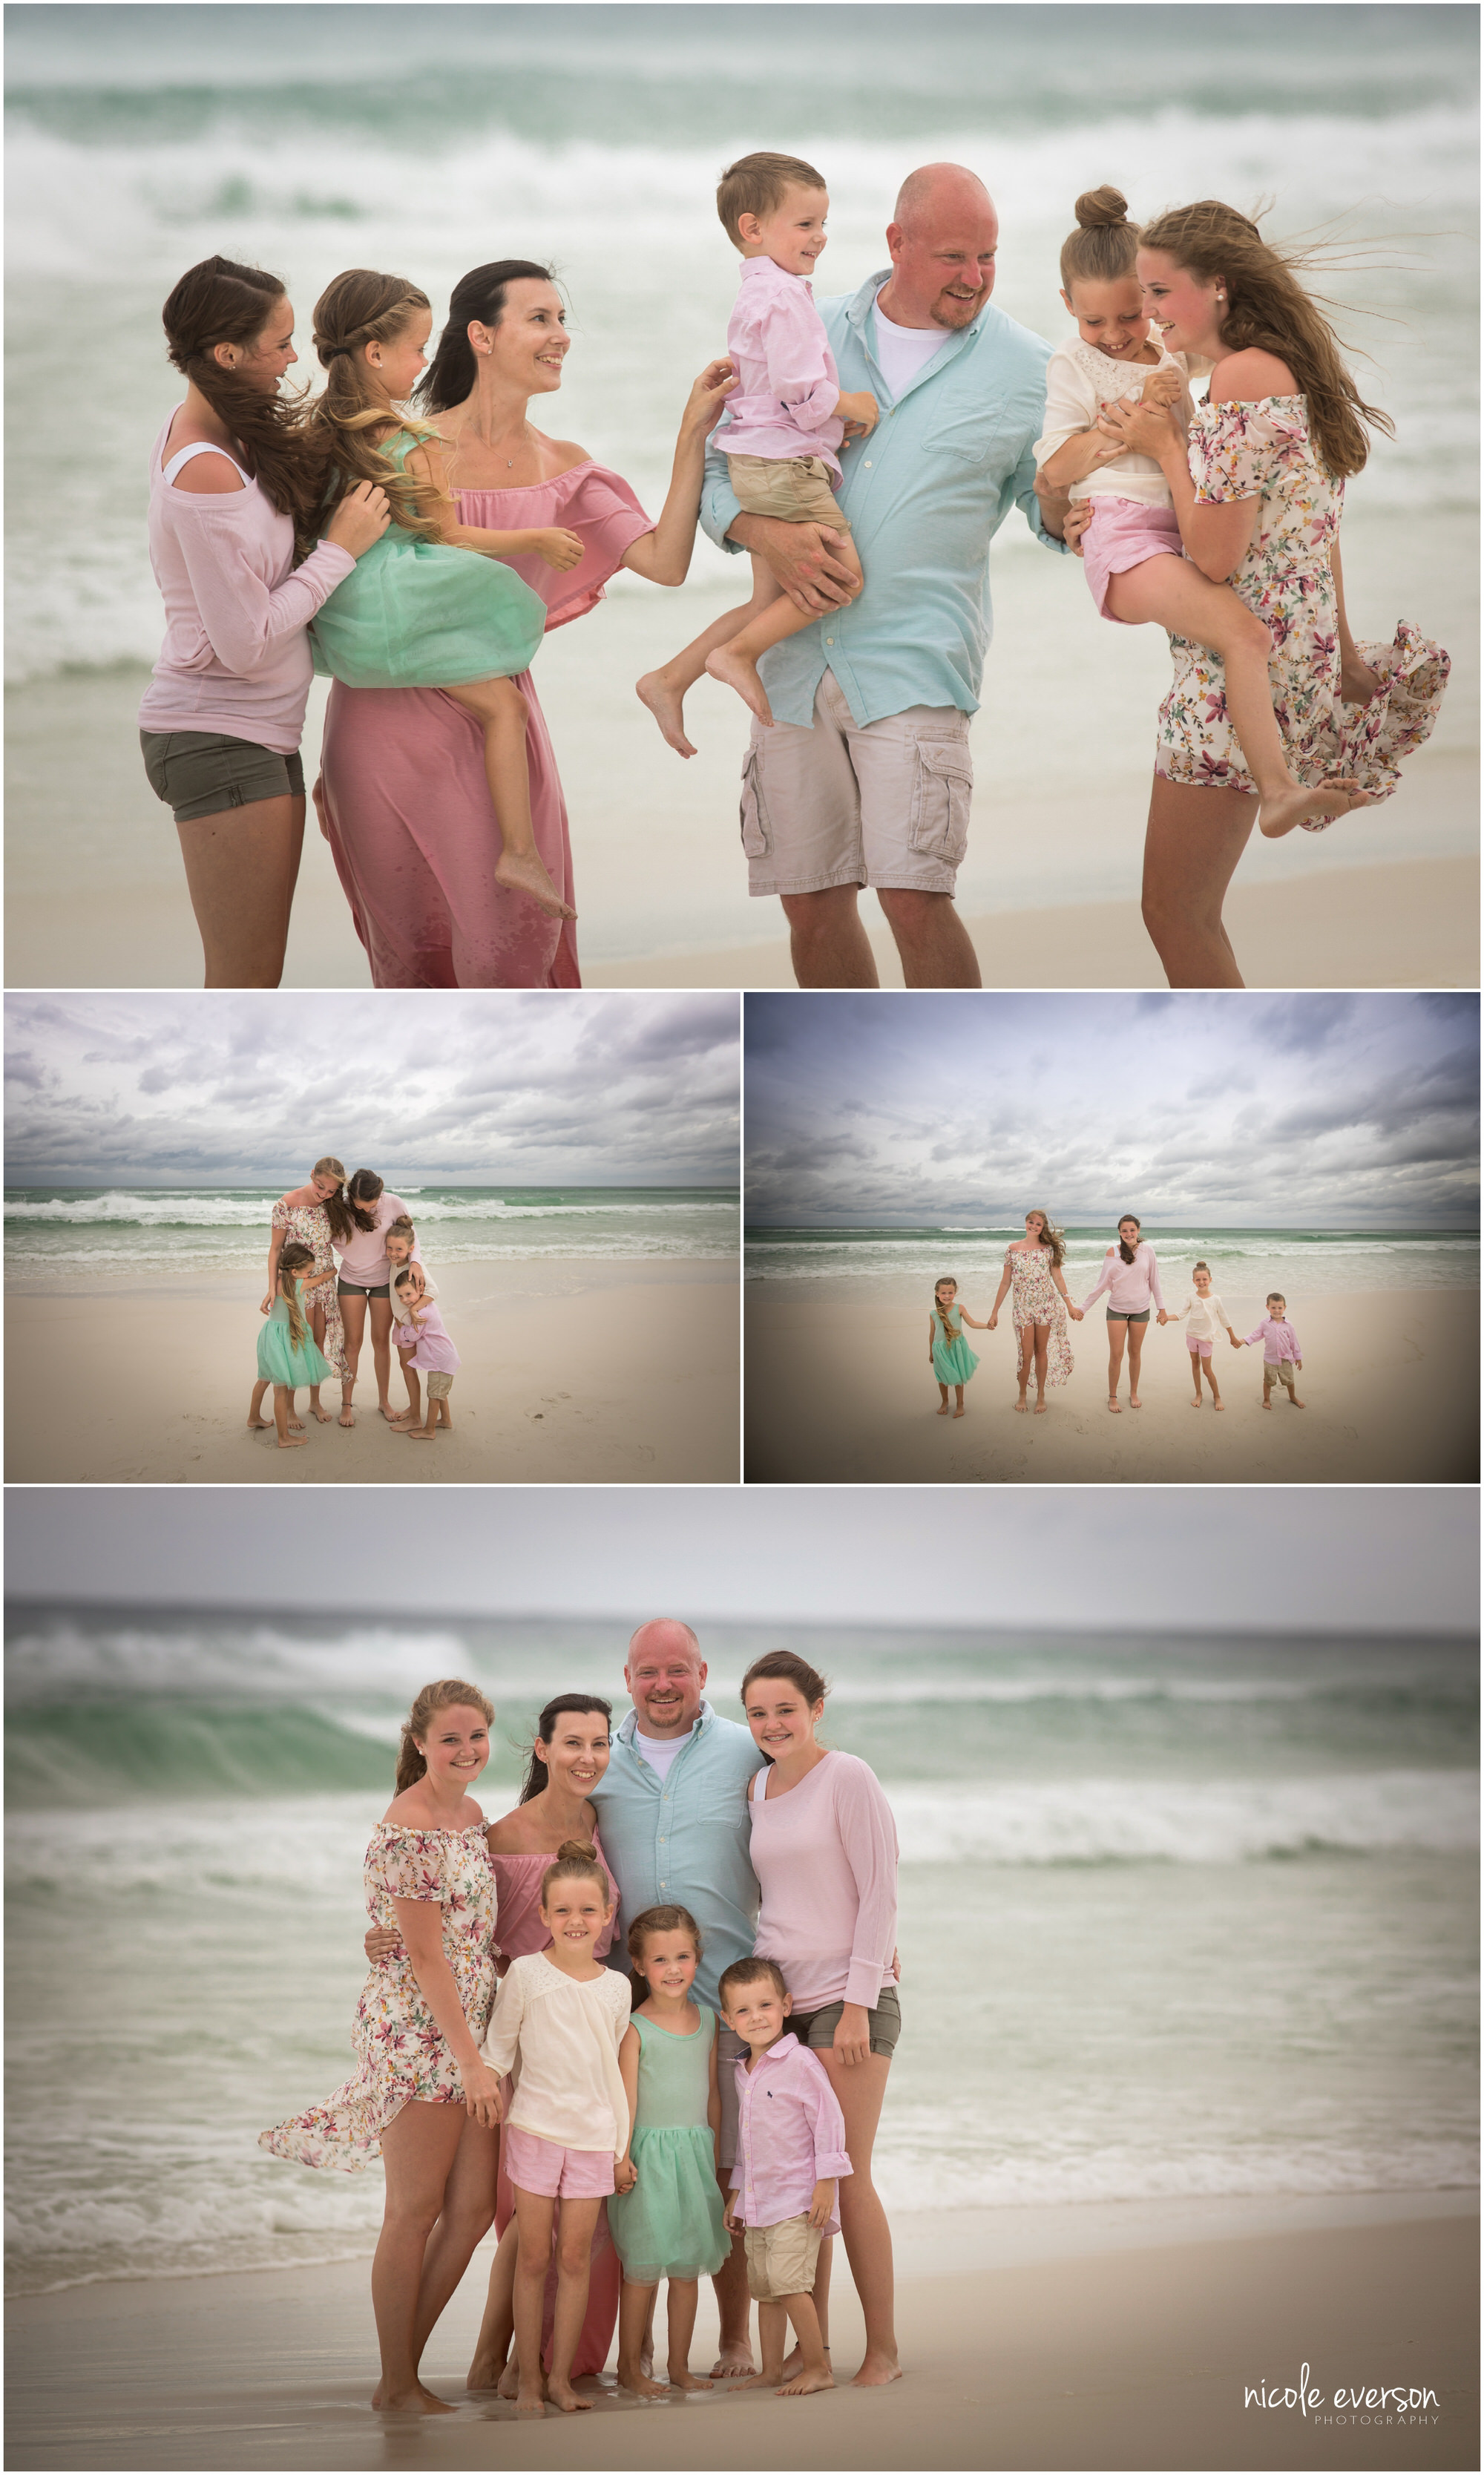 fun beach photos by Nicole Everson Photography